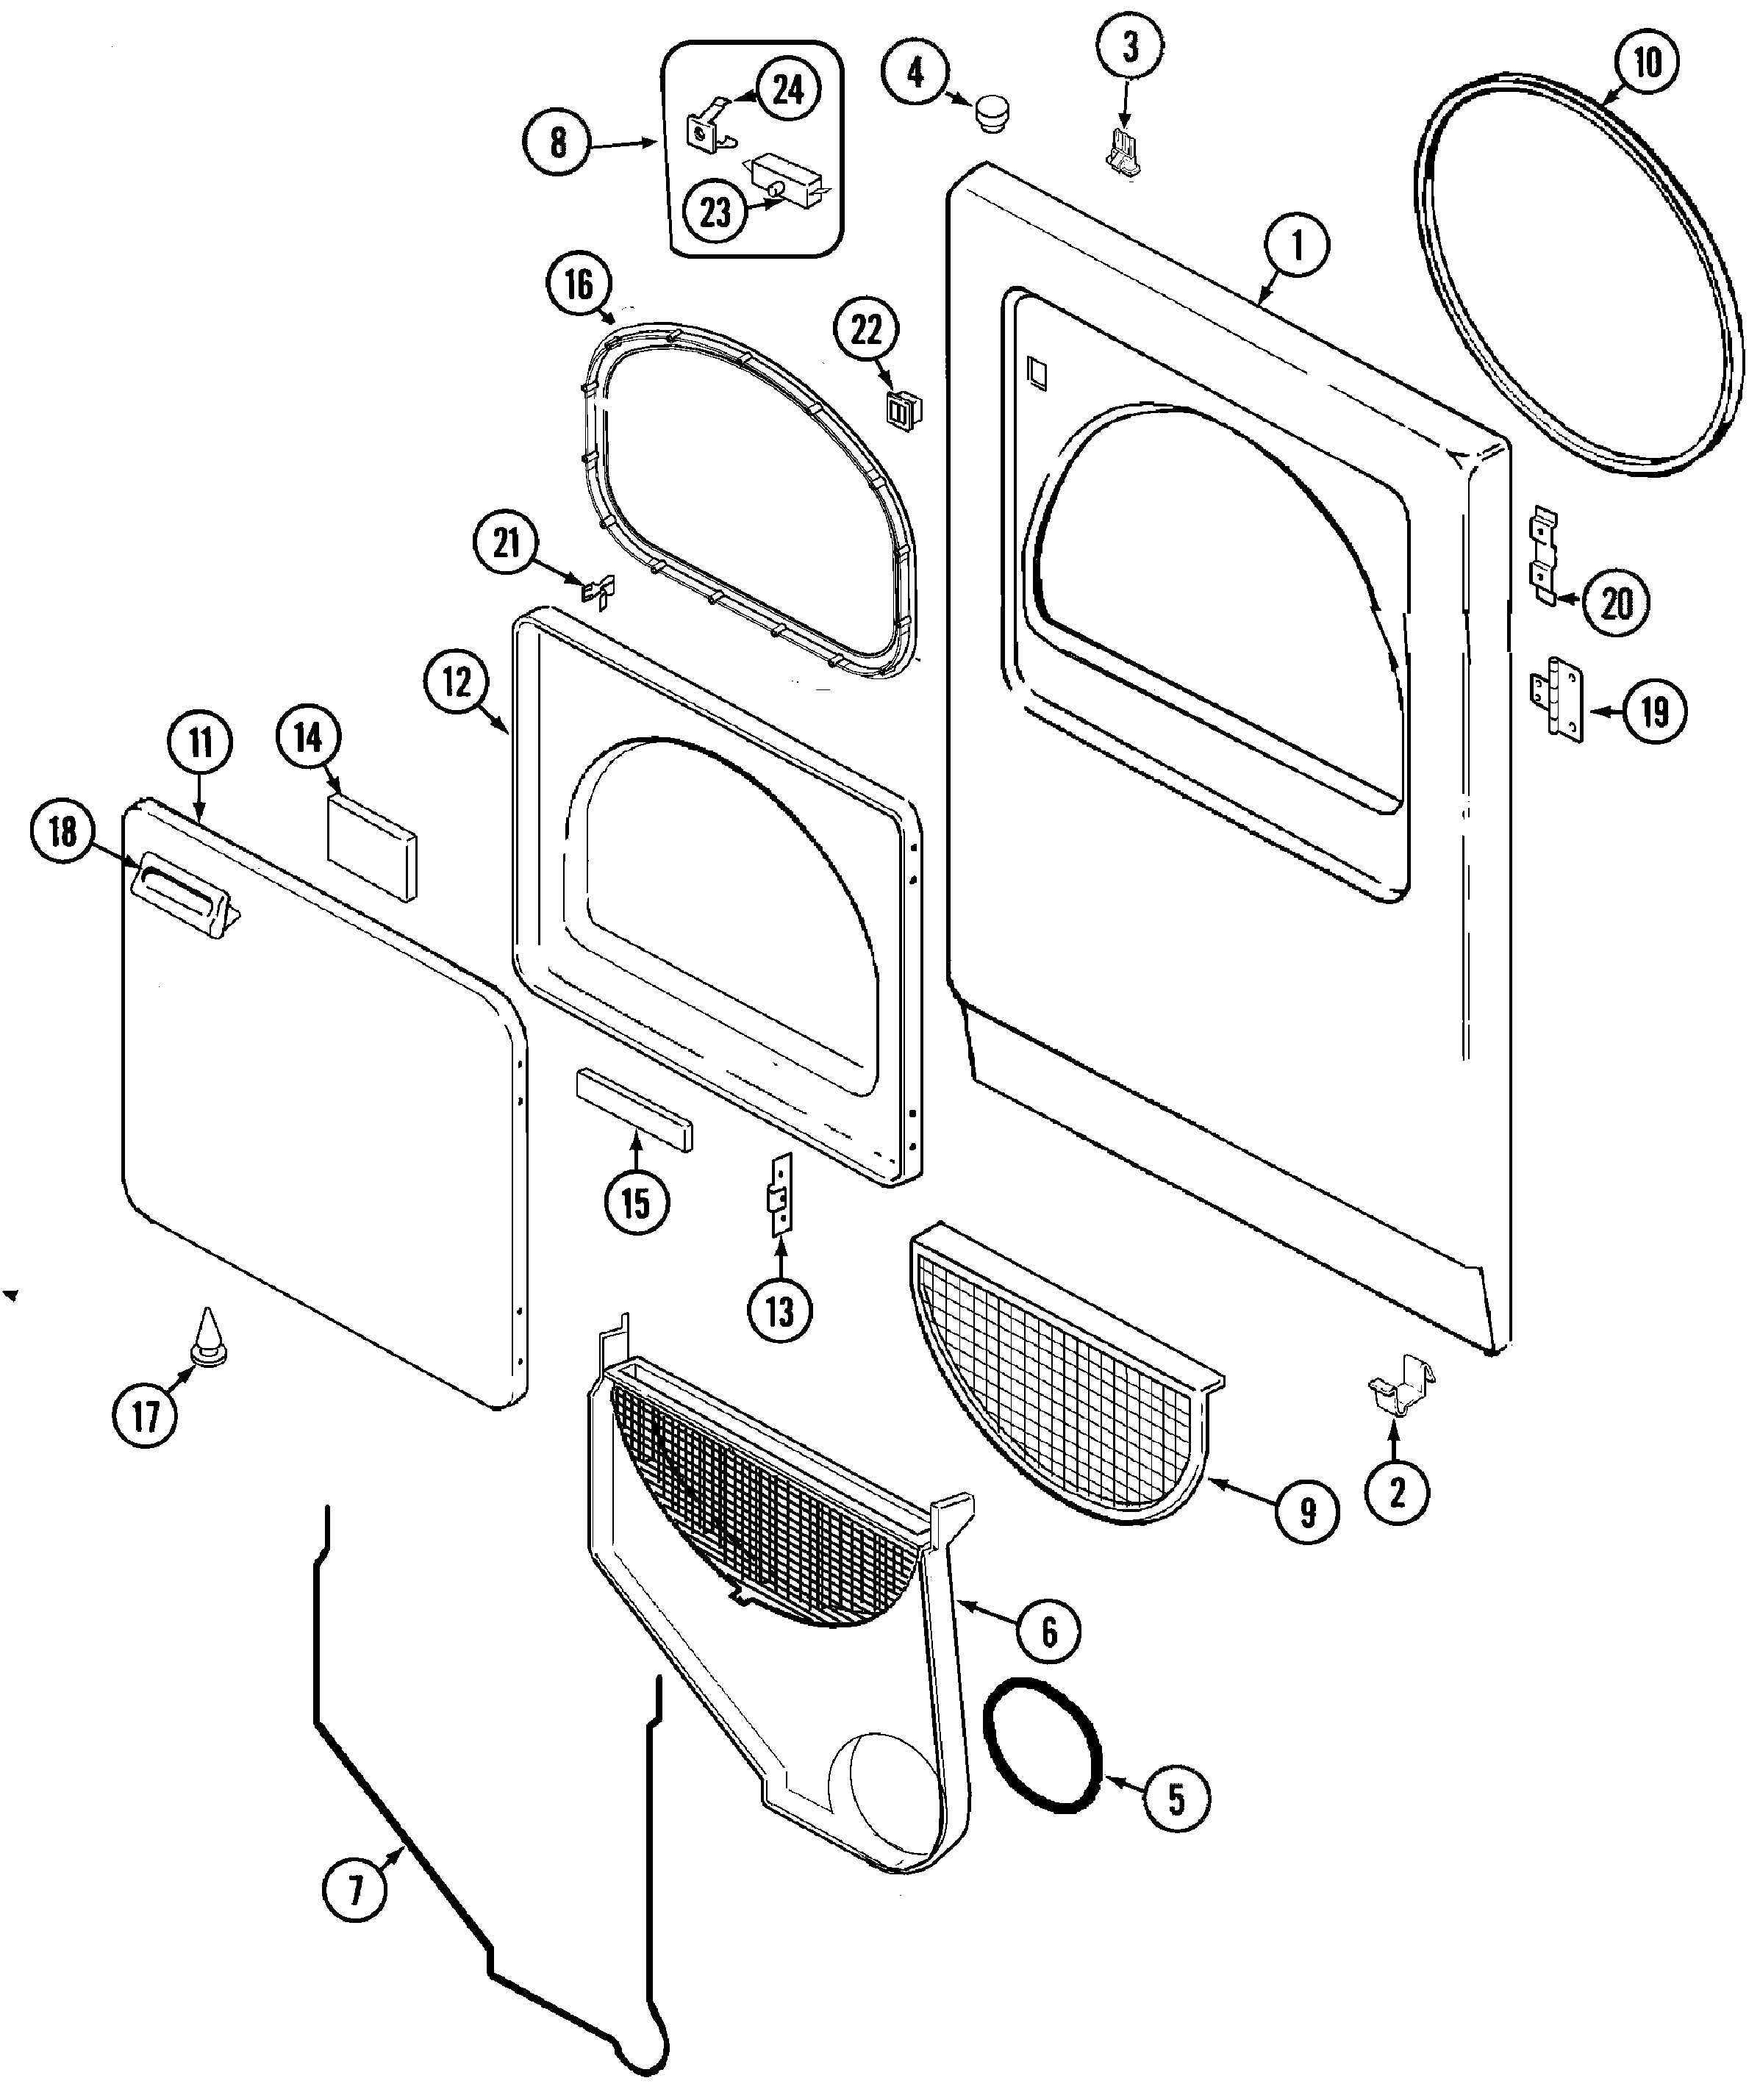 Admiral dishwasher wiring diagrams